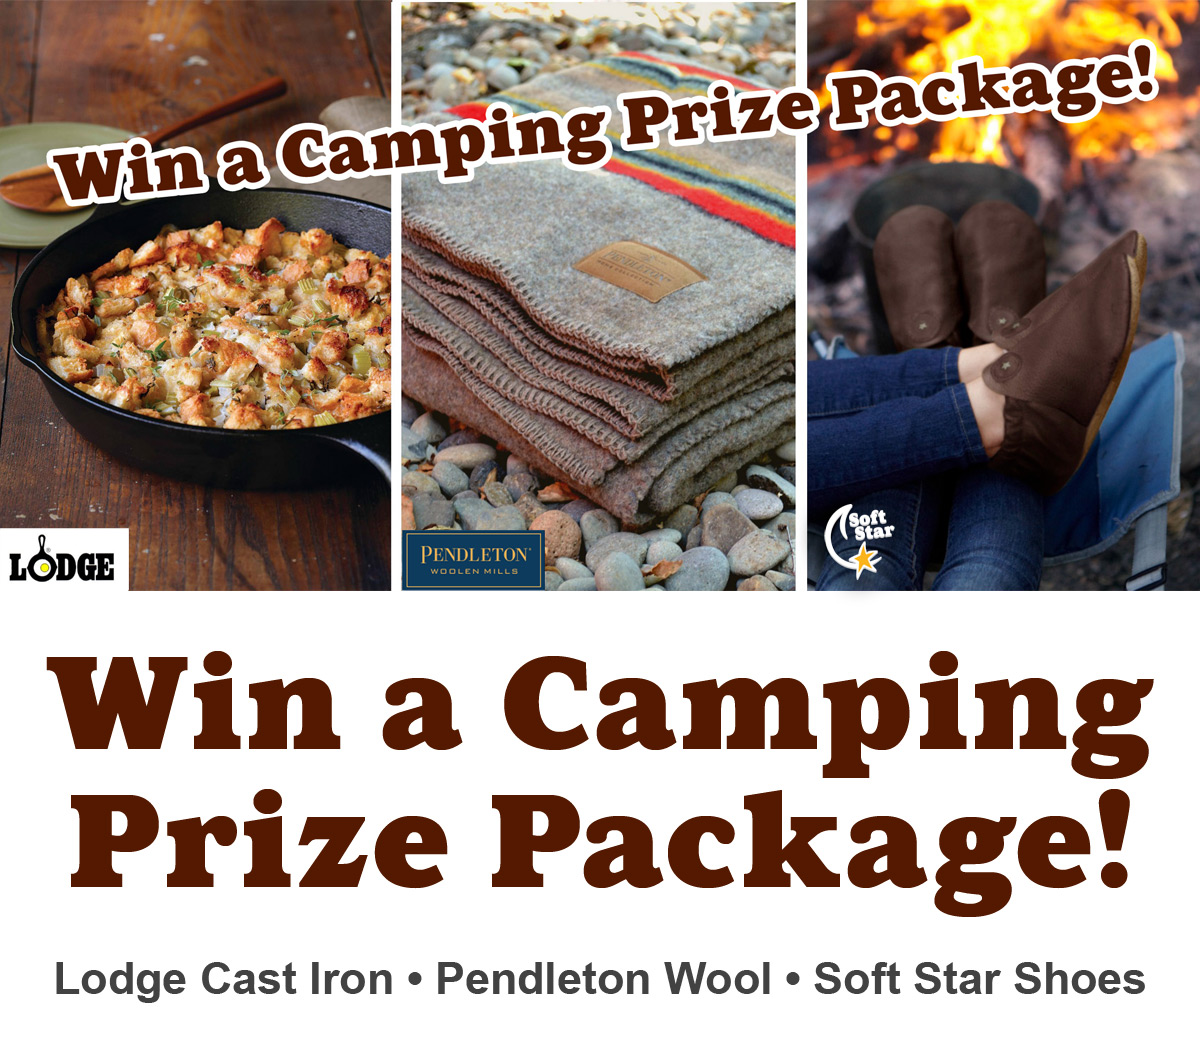 Made-in-USA Camping Giveaway